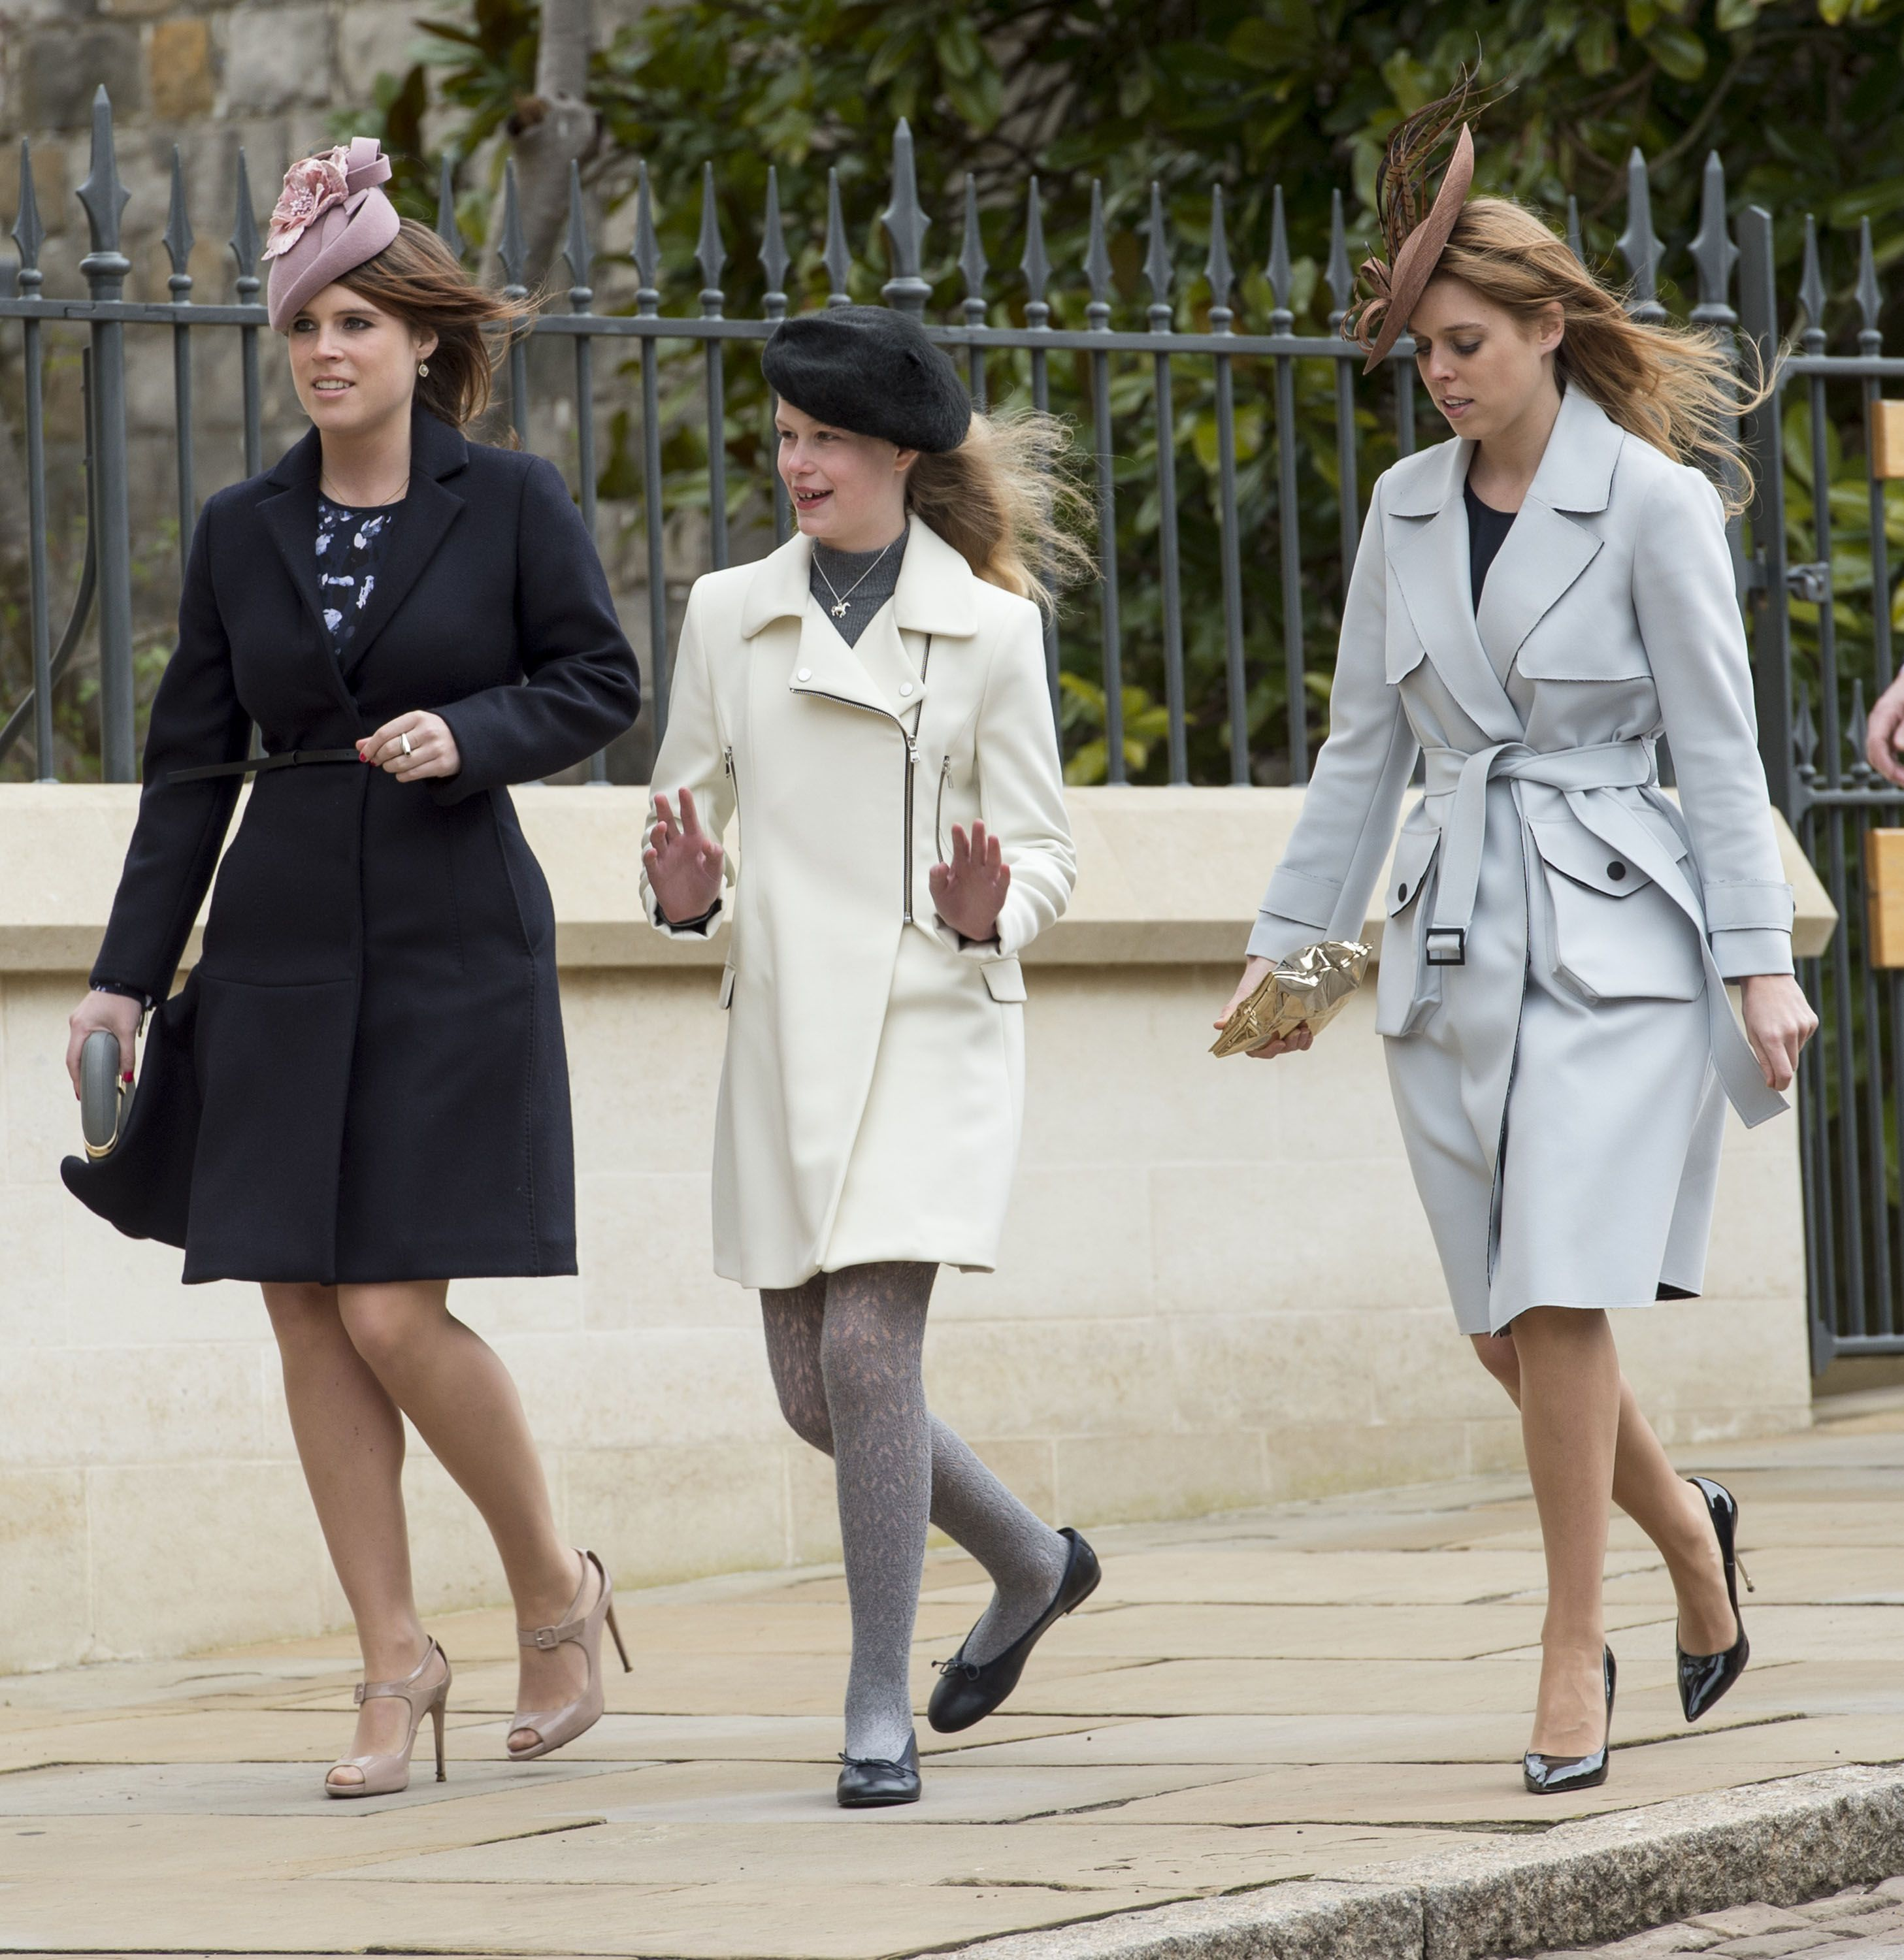 Lady Louise Windsor is flanked by her first cousins Princess Eugenie and Princess Beatrice entering Easter Sunday Service at St. George's Chapel near Windsor Castle in 2016.